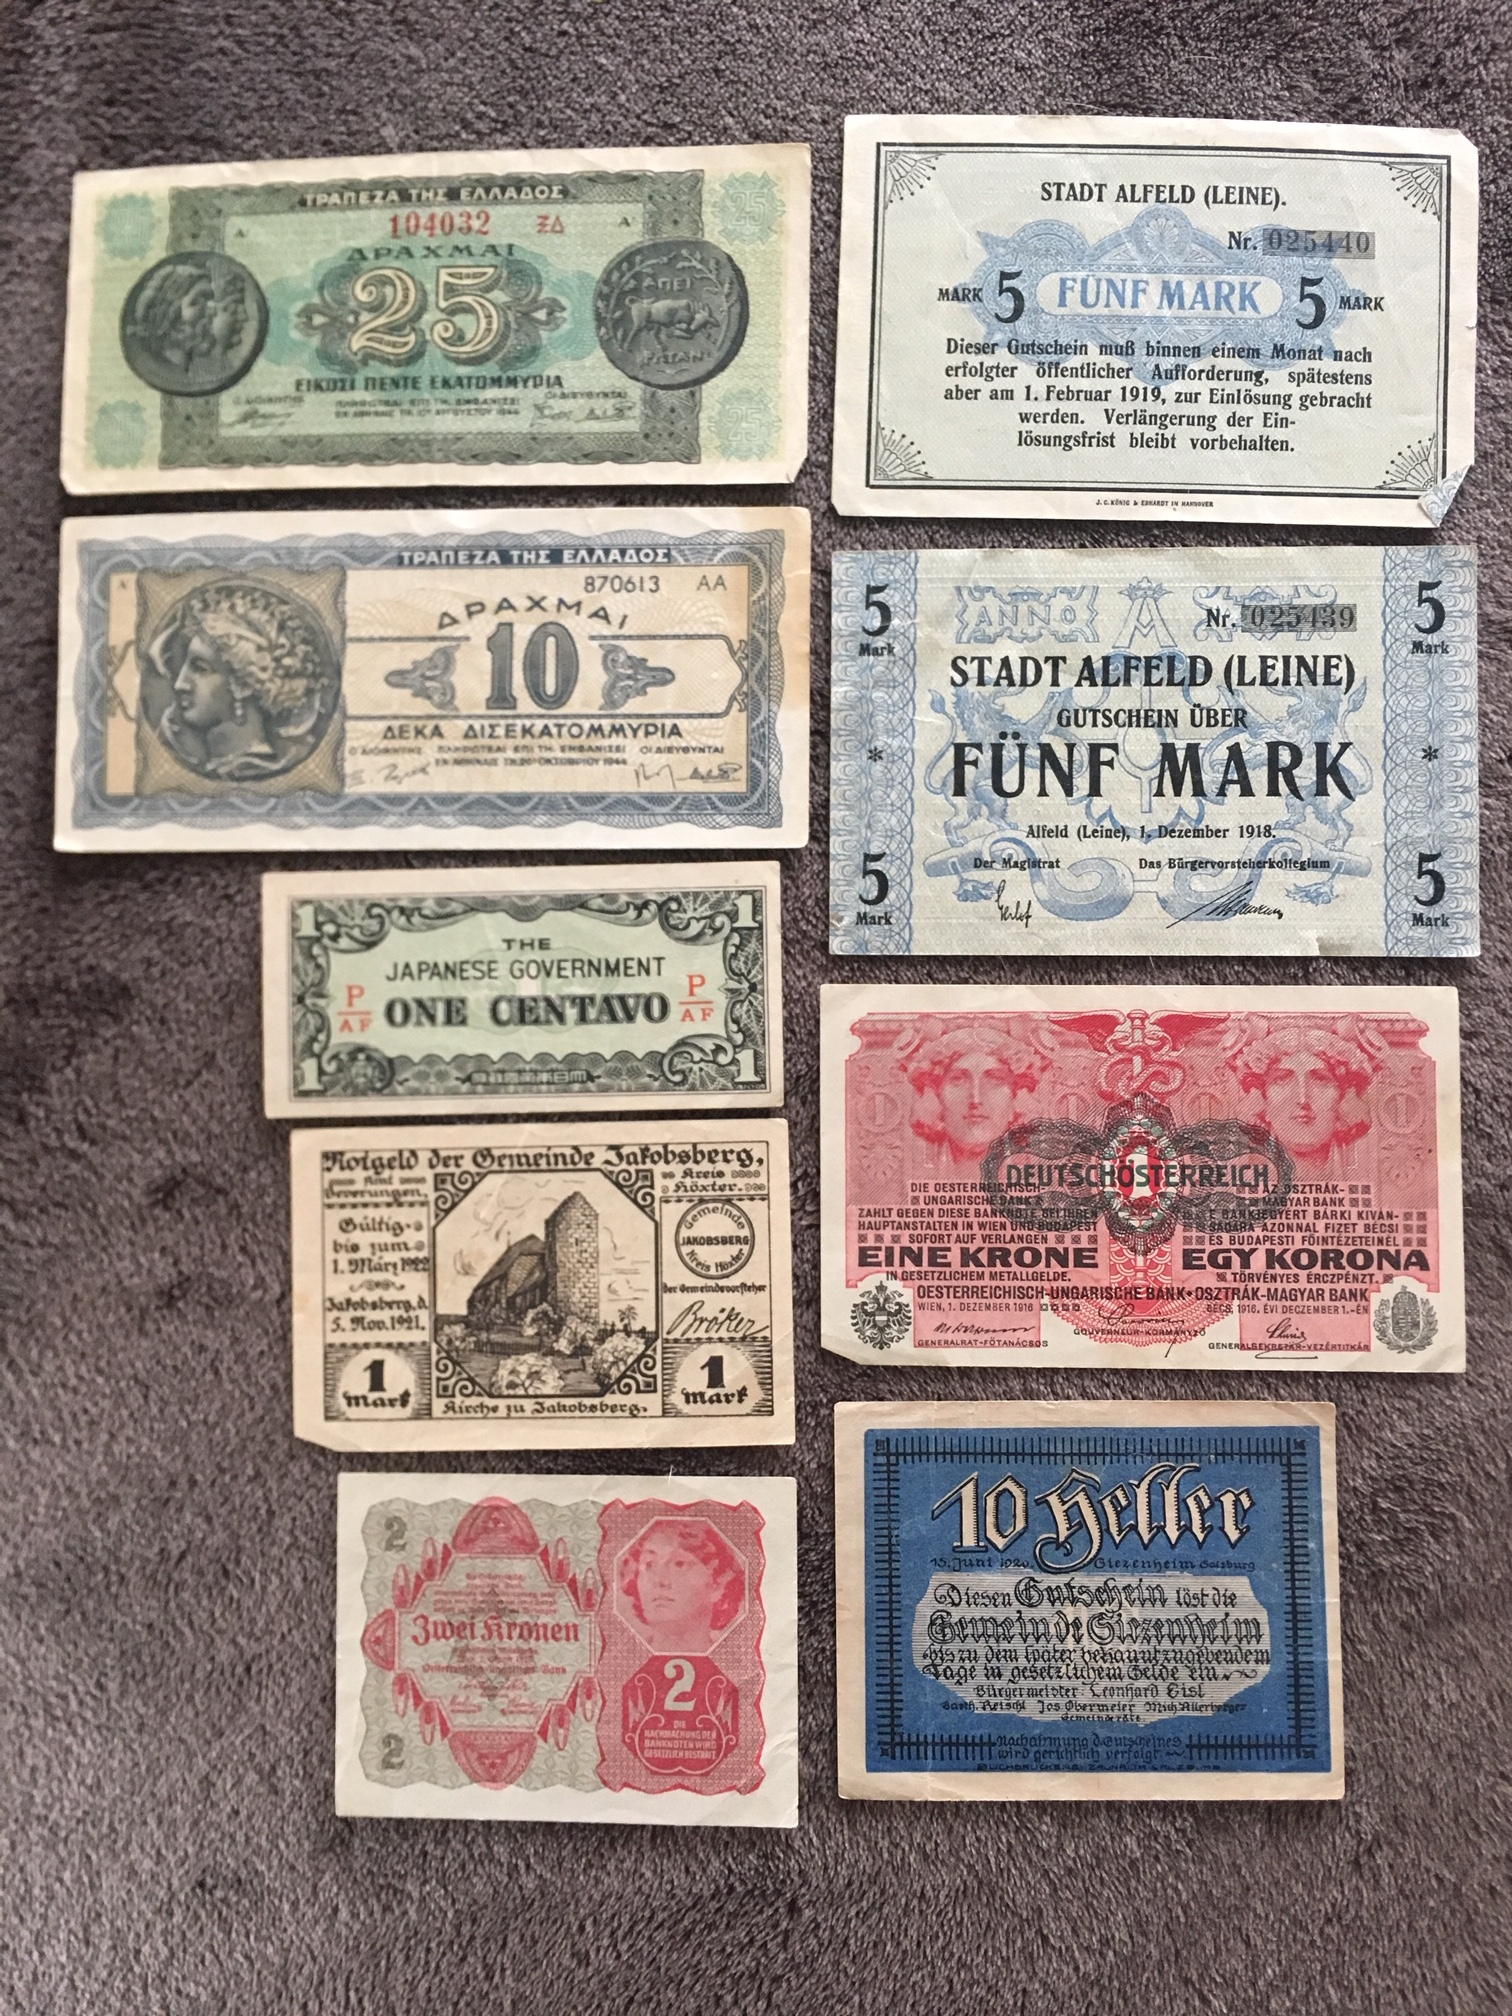 Would Love To Know More About This Small Collection Of What Appears -